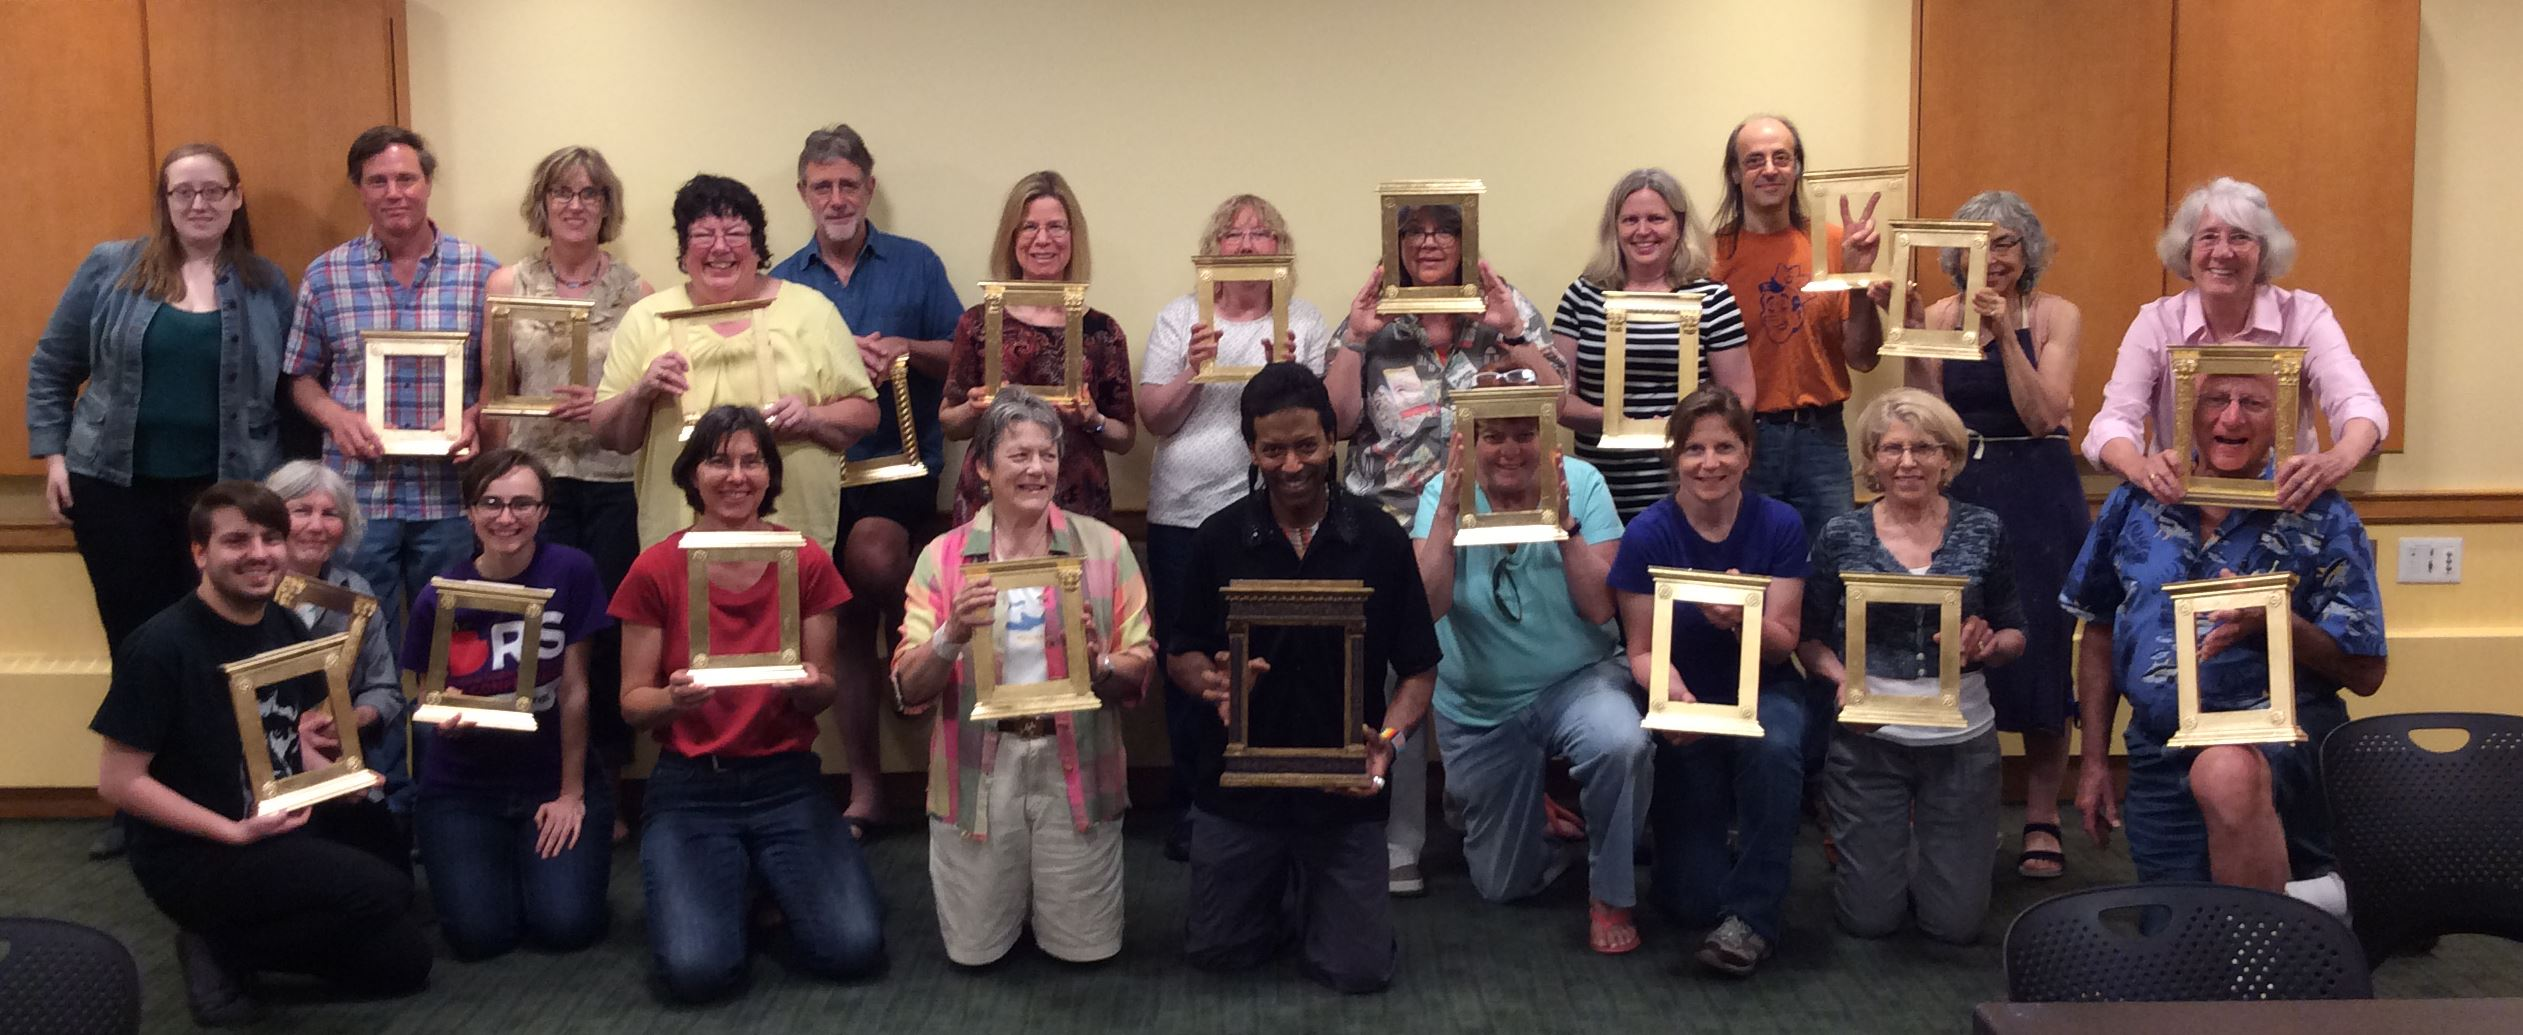 Participants of the frame gilding workshop show off their frames